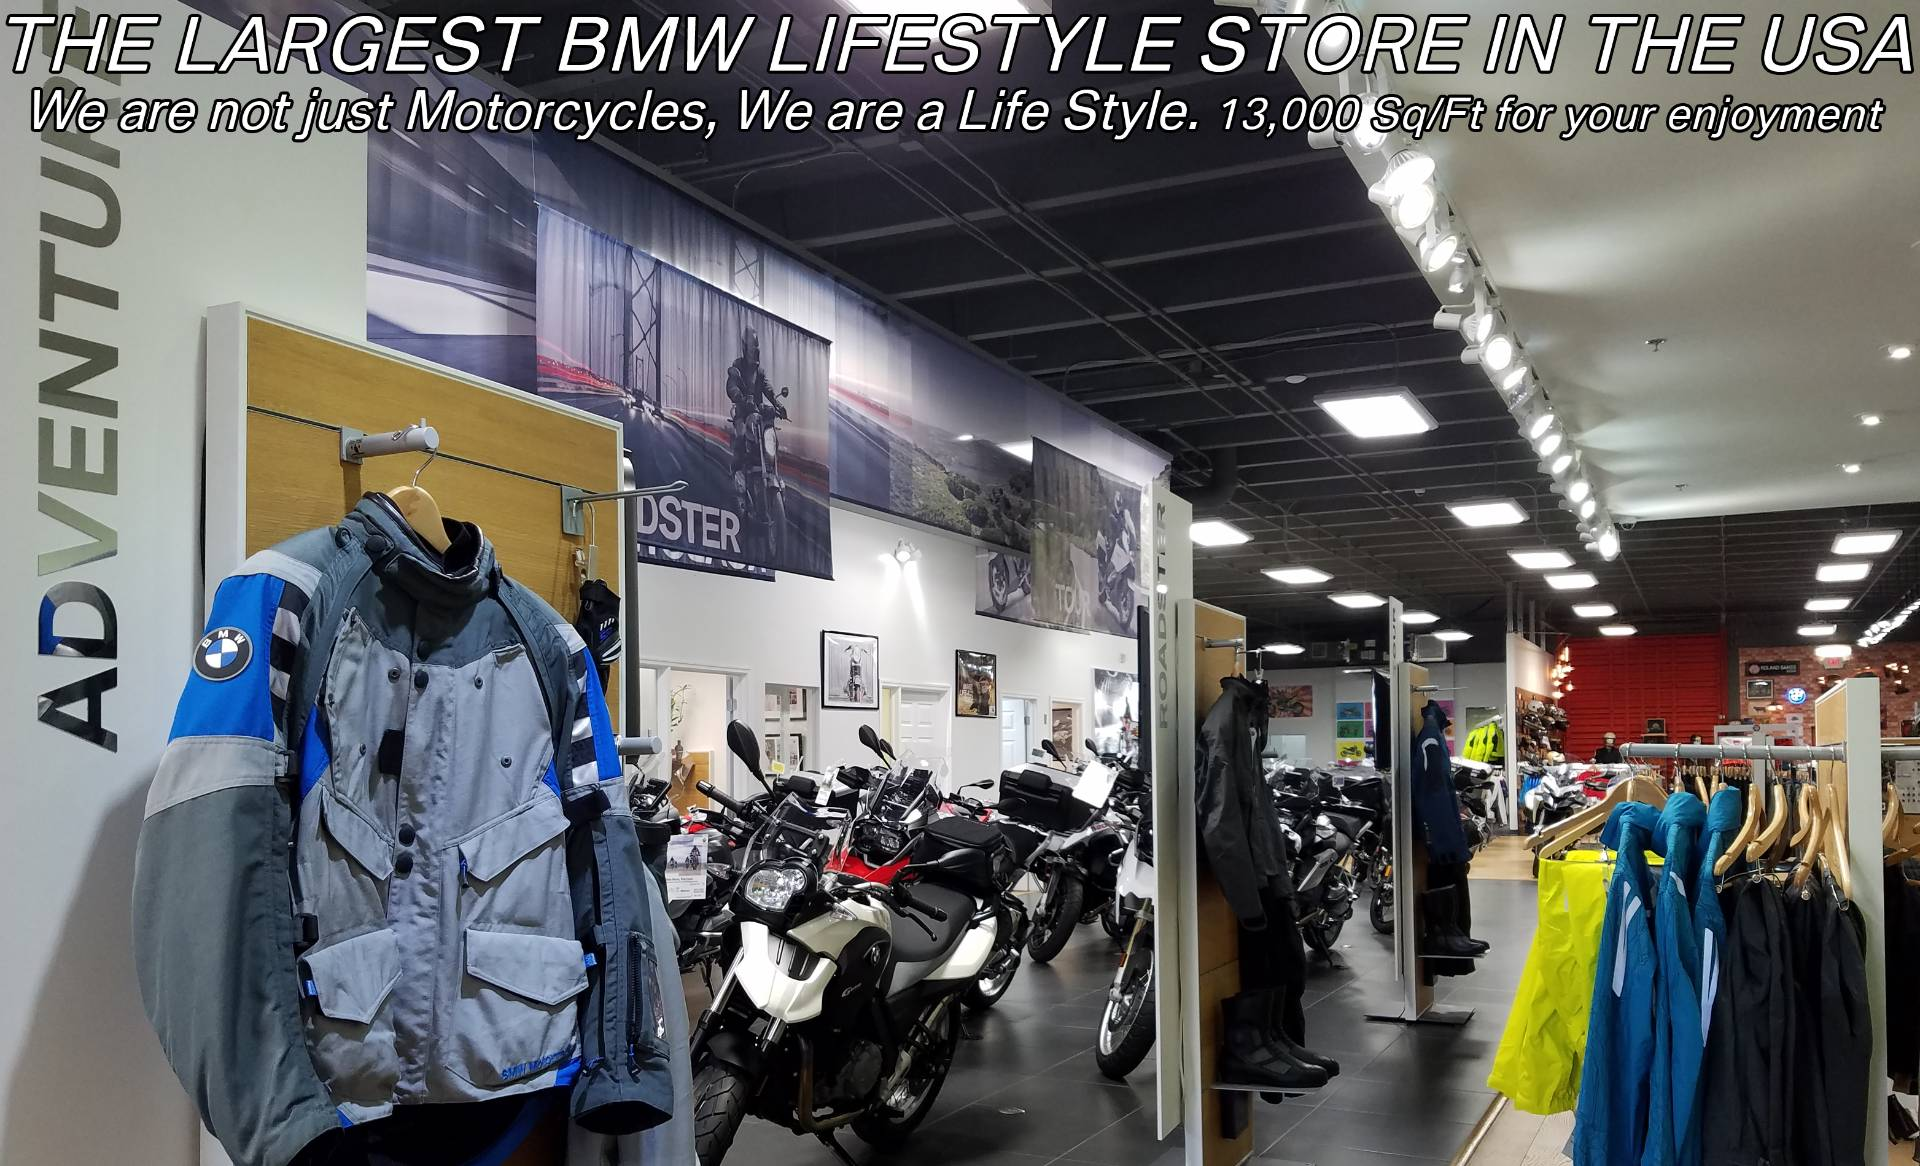 New 2019 BMW Nostalgia for sale, BMW Motorcycle Nostalgia, new BMW Motorcycle, Vintage, R7, BMW Motorcycles of Miami, Motorcycles of Miami, Motorcycles Miami - Photo 65